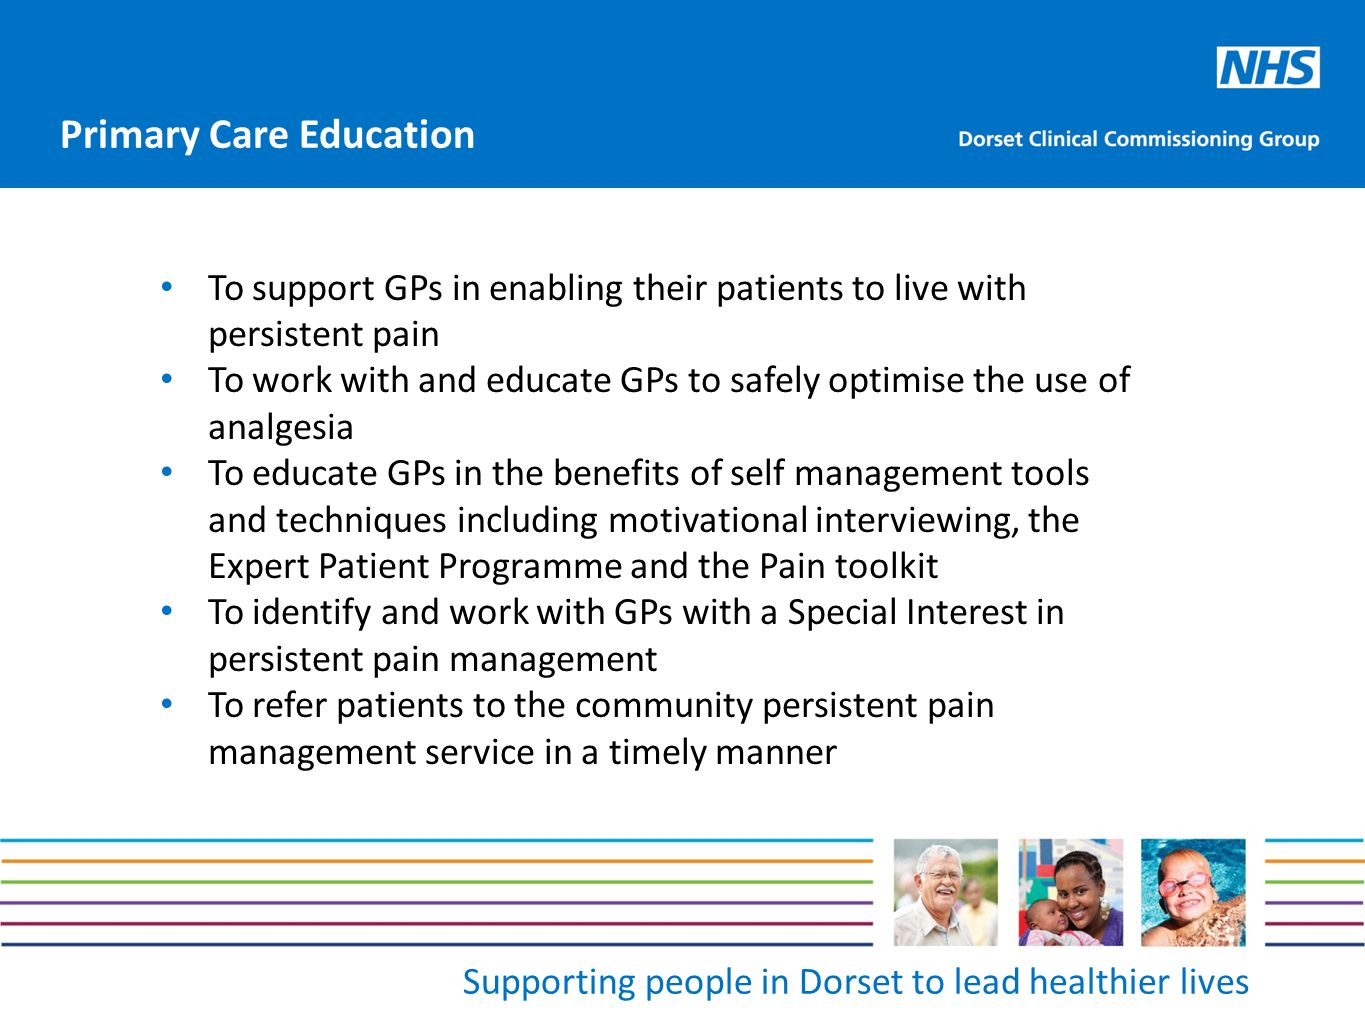 Supporting people in Dorset to lead healthier lives To support GPs in enabling their patients to live with persistent pain To work with and educate GPs to safely optimise the use of analgesia To educate GPs in the benefits of self management tools and techniques including motivational interviewing, the Expert Patient Programme and the Pain toolkit To identify and work with GPs with a Special Interest in persistent pain management To refer patients to the community persistent pain management service in a timely manner Primary Care Education